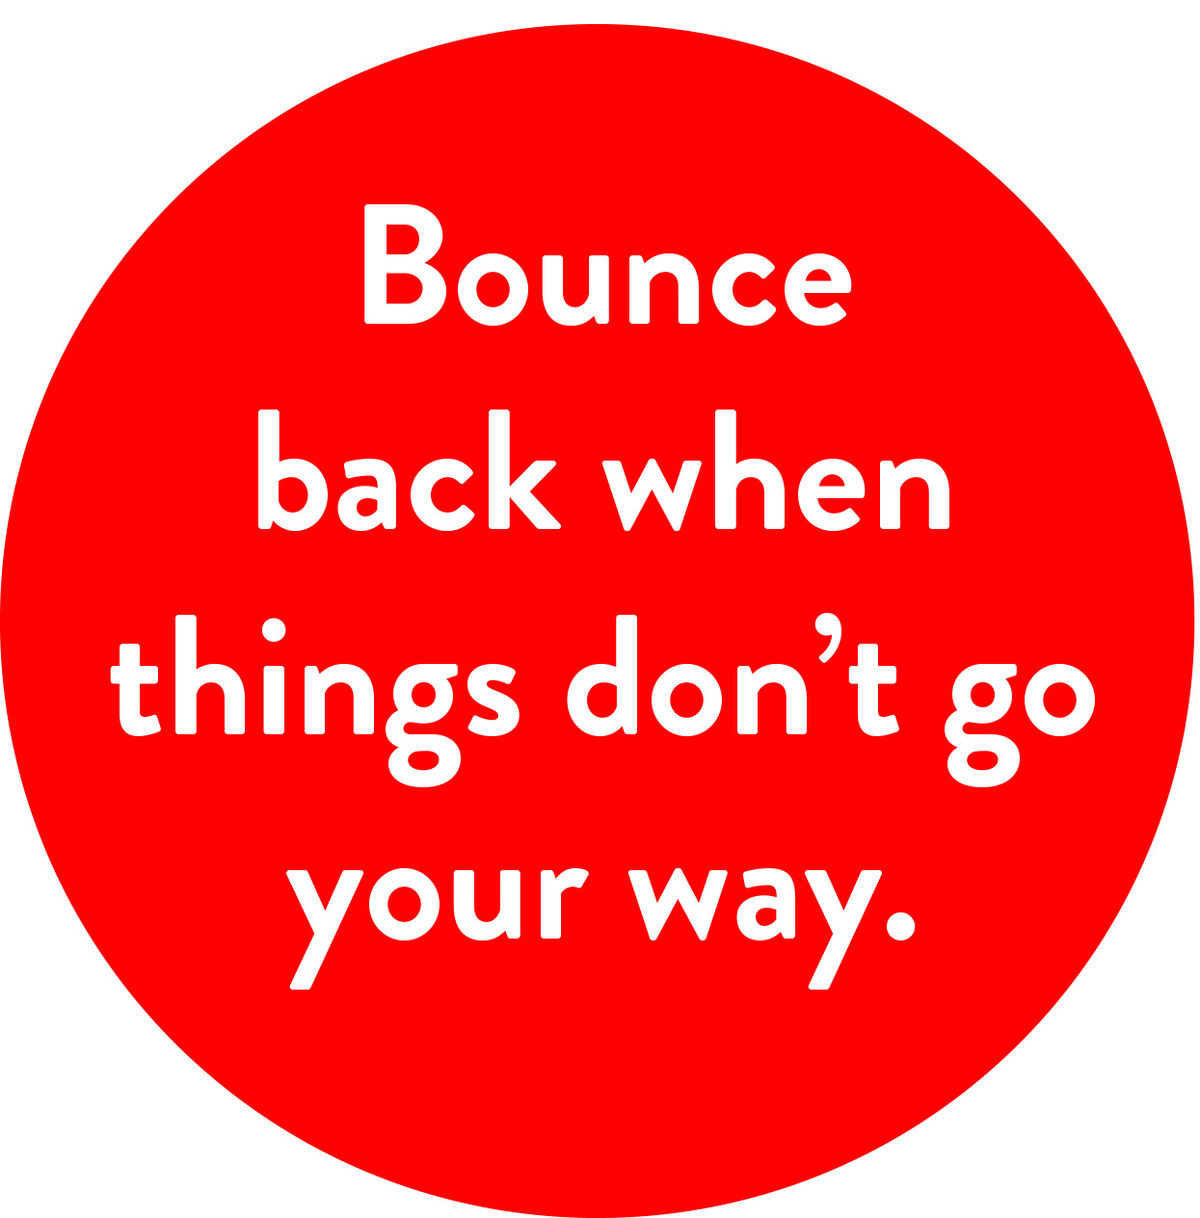 Bounce back when things don't go your way